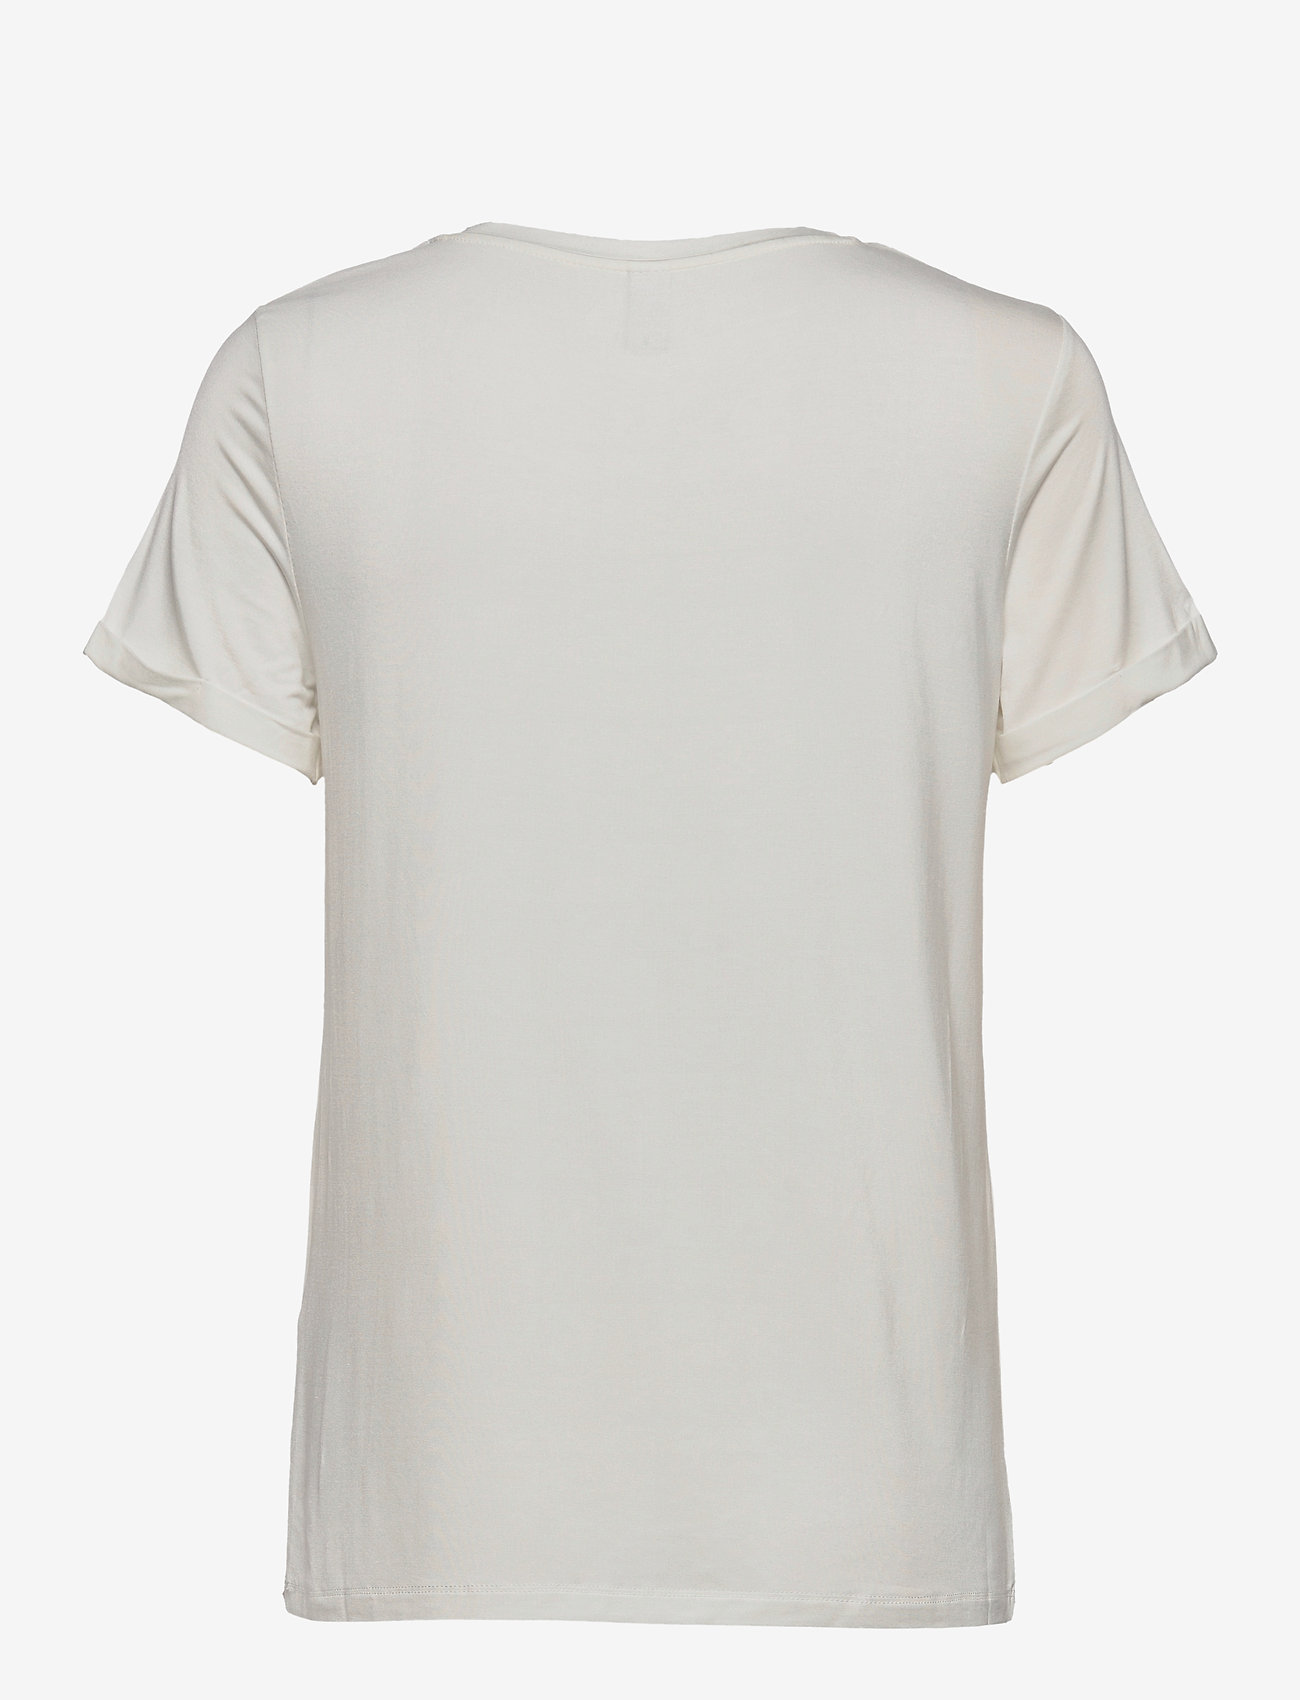 Soyaconcept - SC-MARICA FP - t-shirt & tops - offwhite - 1